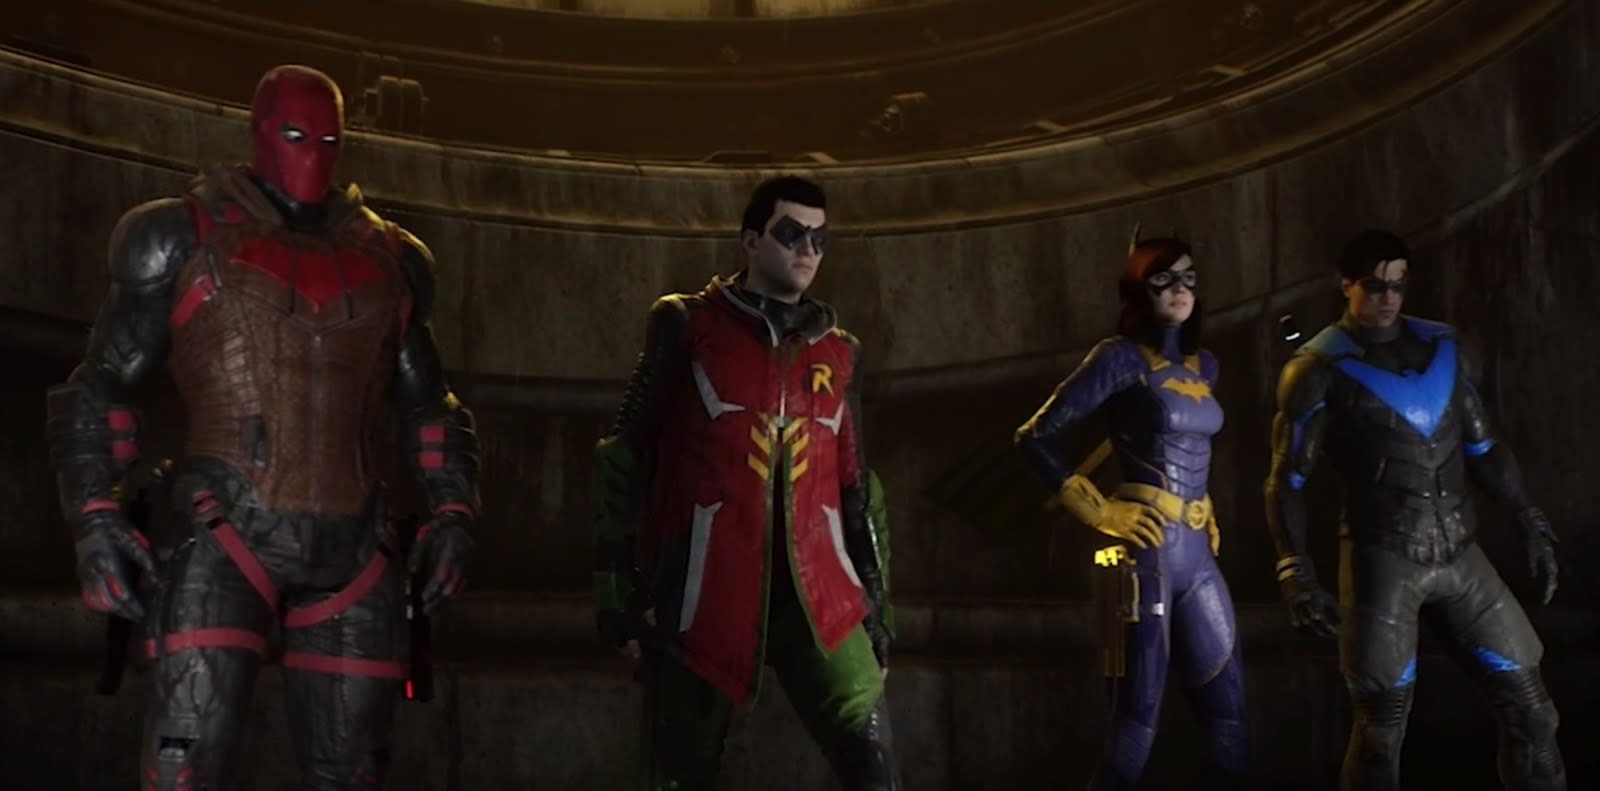 'Gotham Knights' is a Batman game without the Caped Crusader – Yahoo Finance Australia